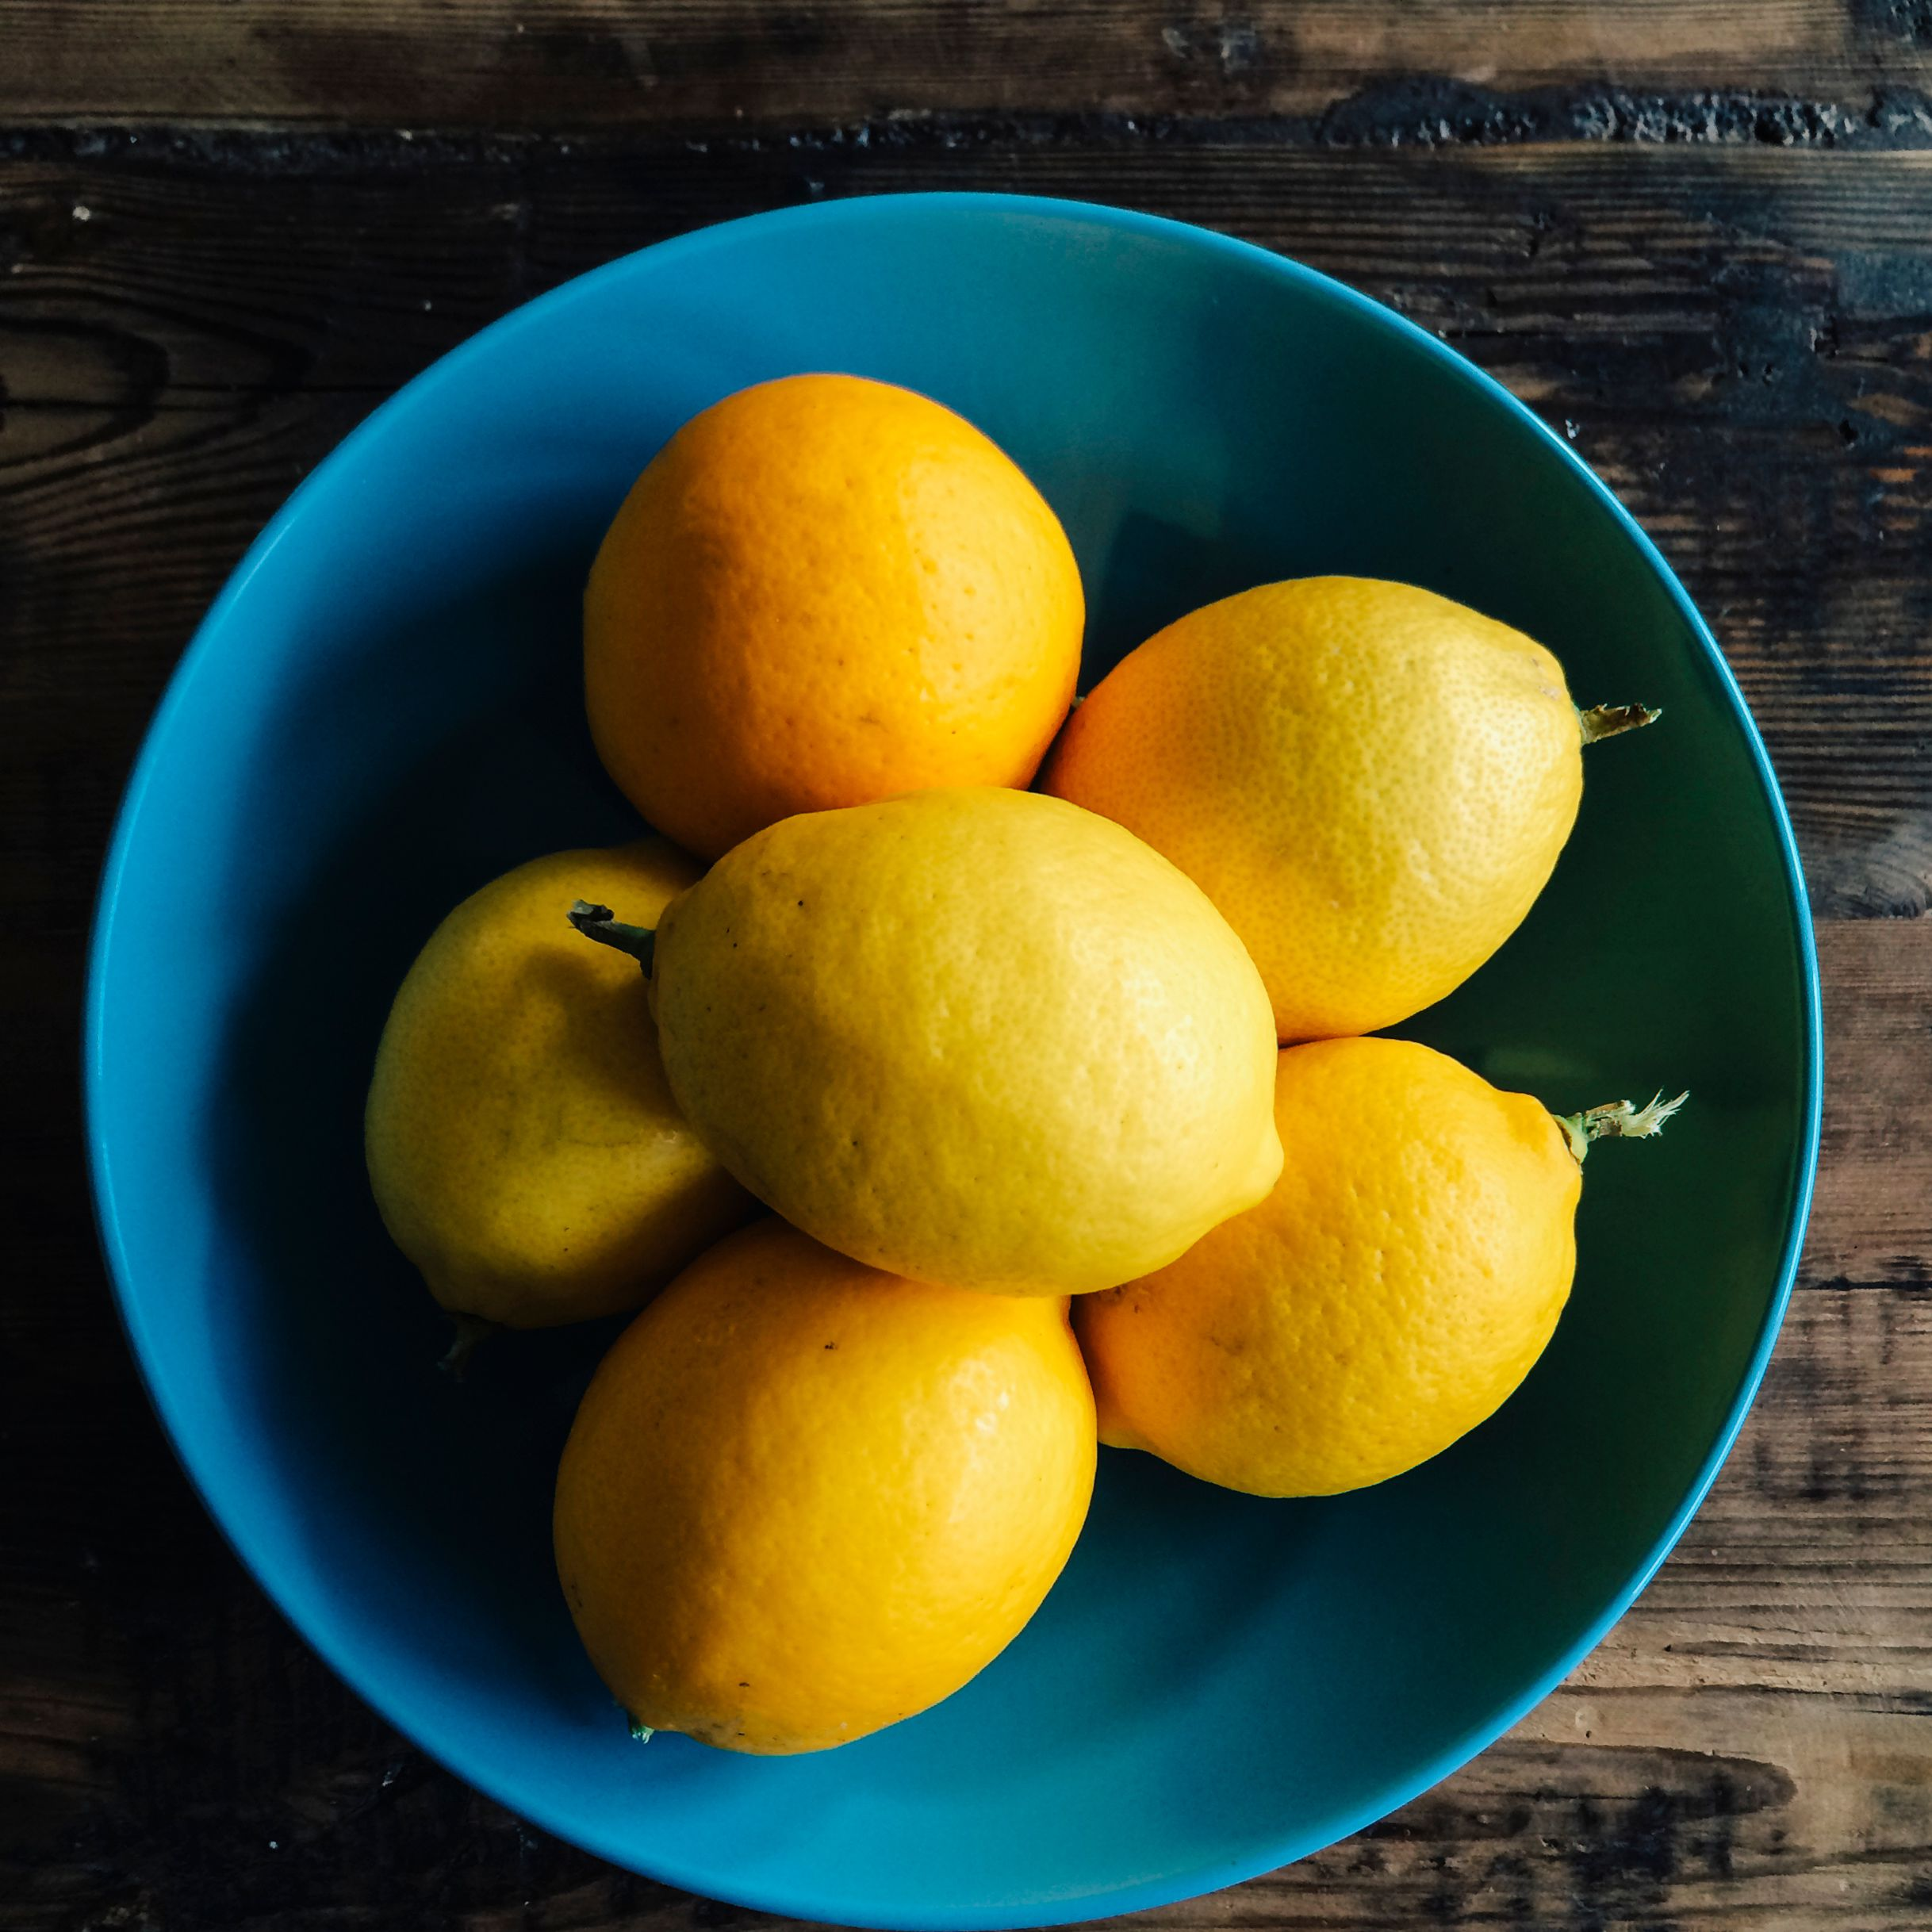 10 Uses For Meyer Lemons